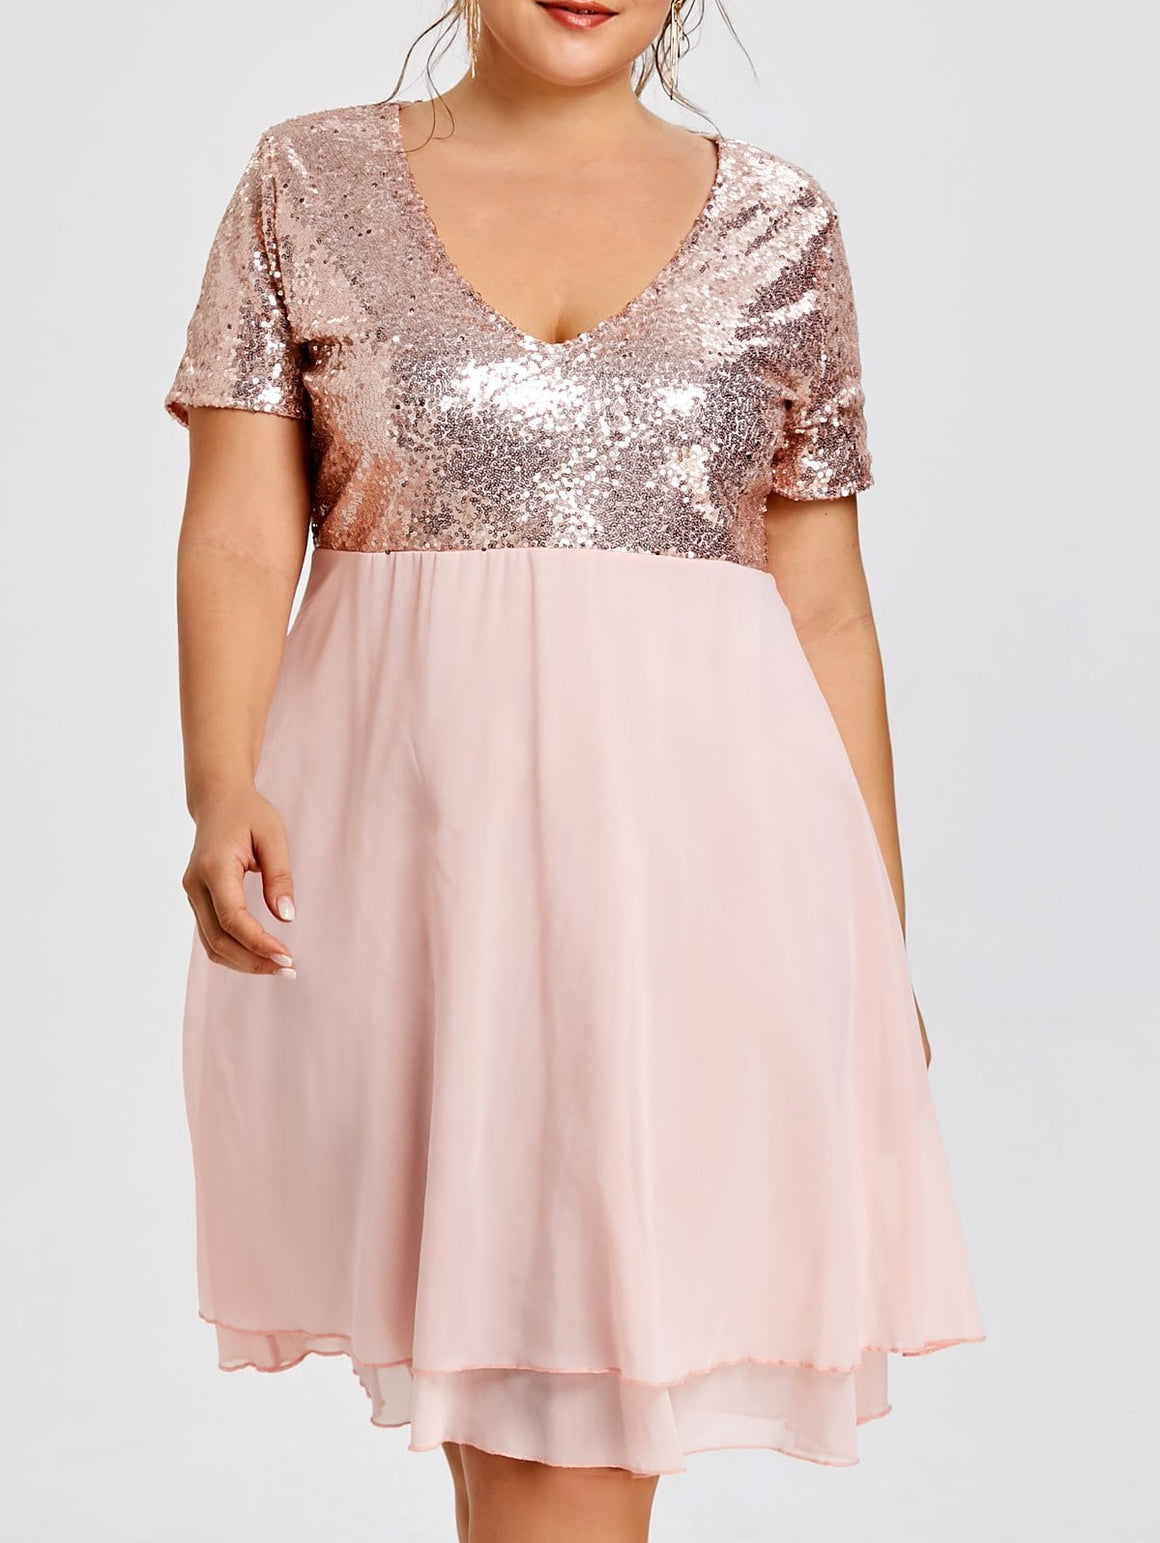 Glitter Plus Size Sequin Homecoming Dress